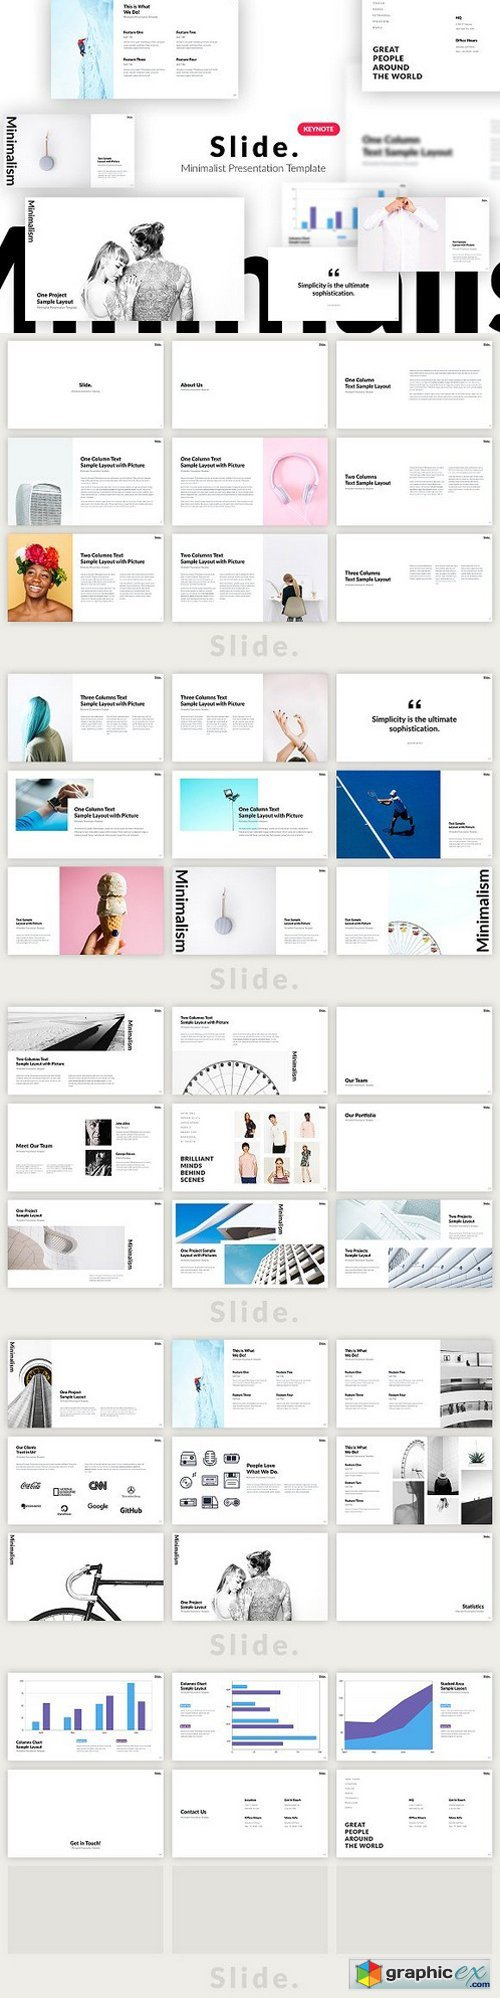 Slide. Minimalist Keynote Template